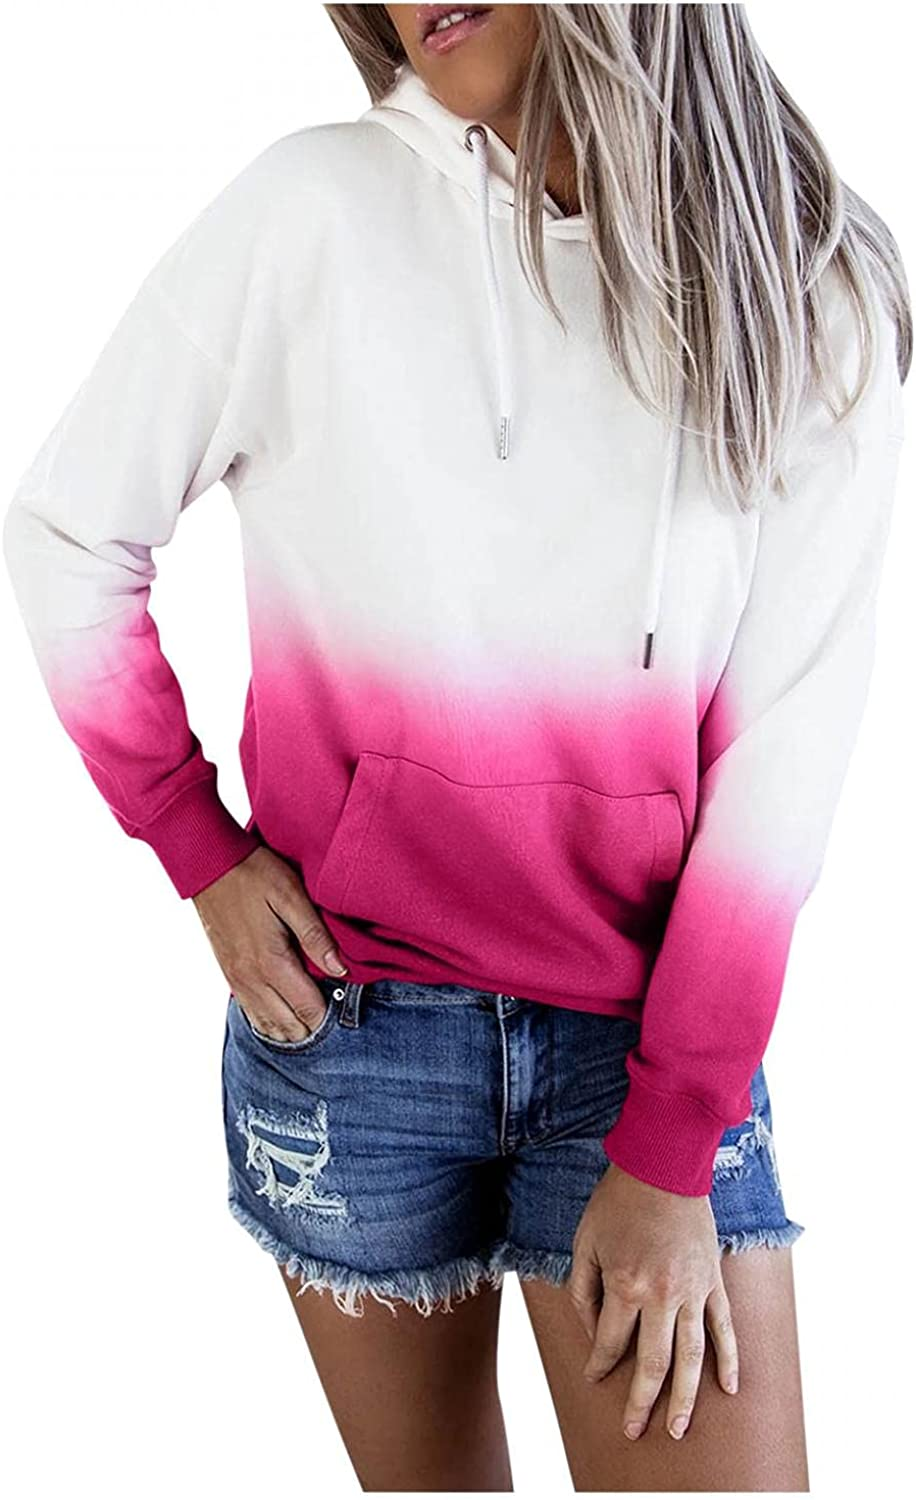 Oiumov Hoodies for Women Pullover Graphic Plus Size Crewneck Sweatshirts Long Sleeve Loose Hooded Tops Sweater Shirts